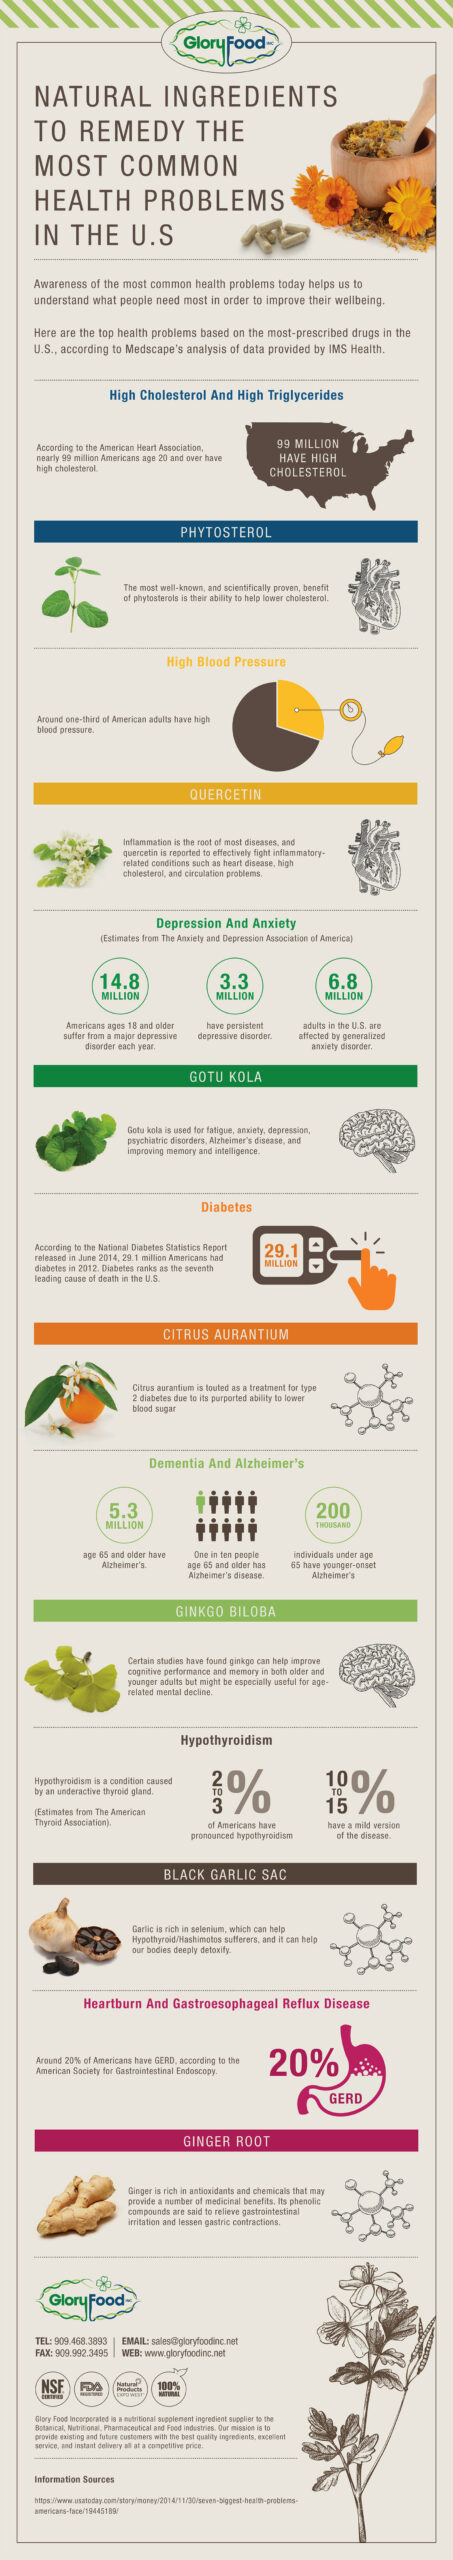 Natural ingredients to remedy the most common health problems in the U.S